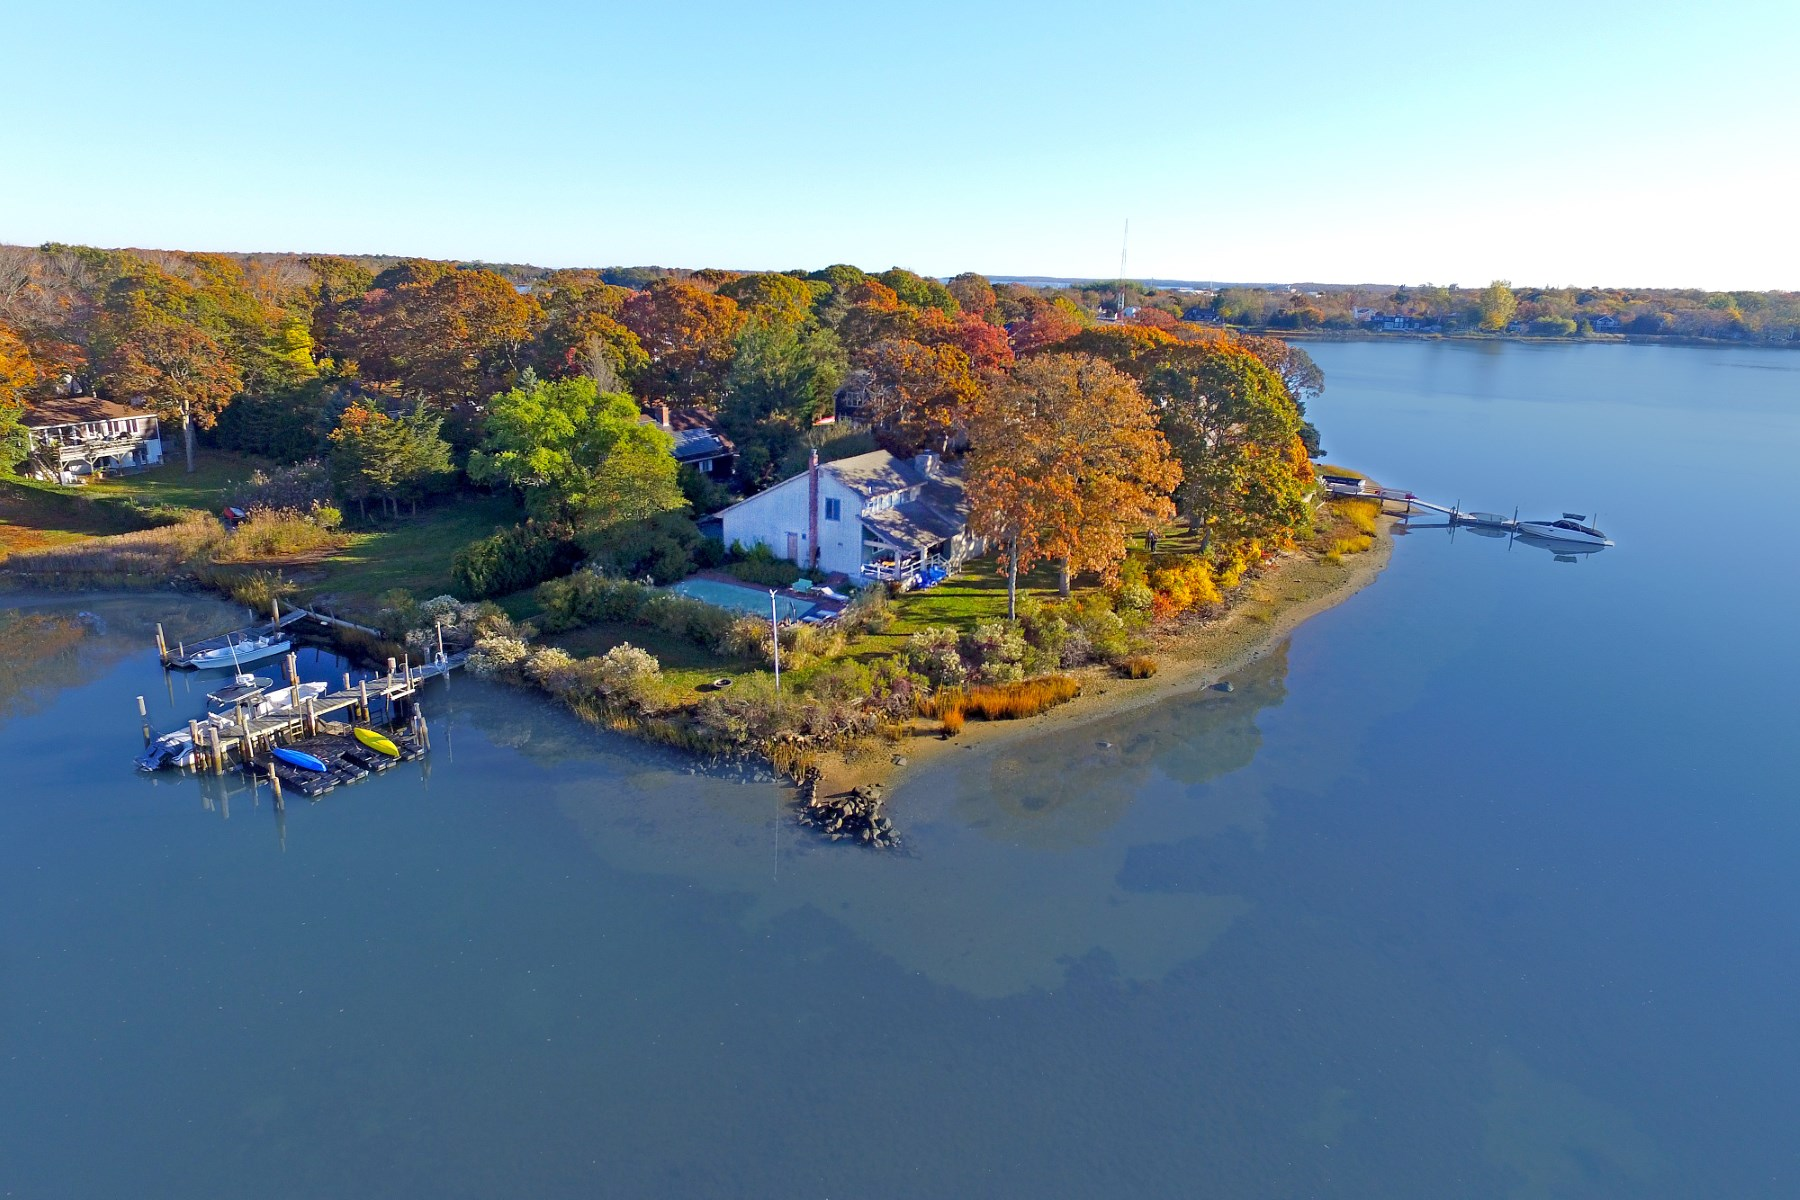 Property For Sale at Dream Waterfront, Dock & Pool in Sag Harbor Village